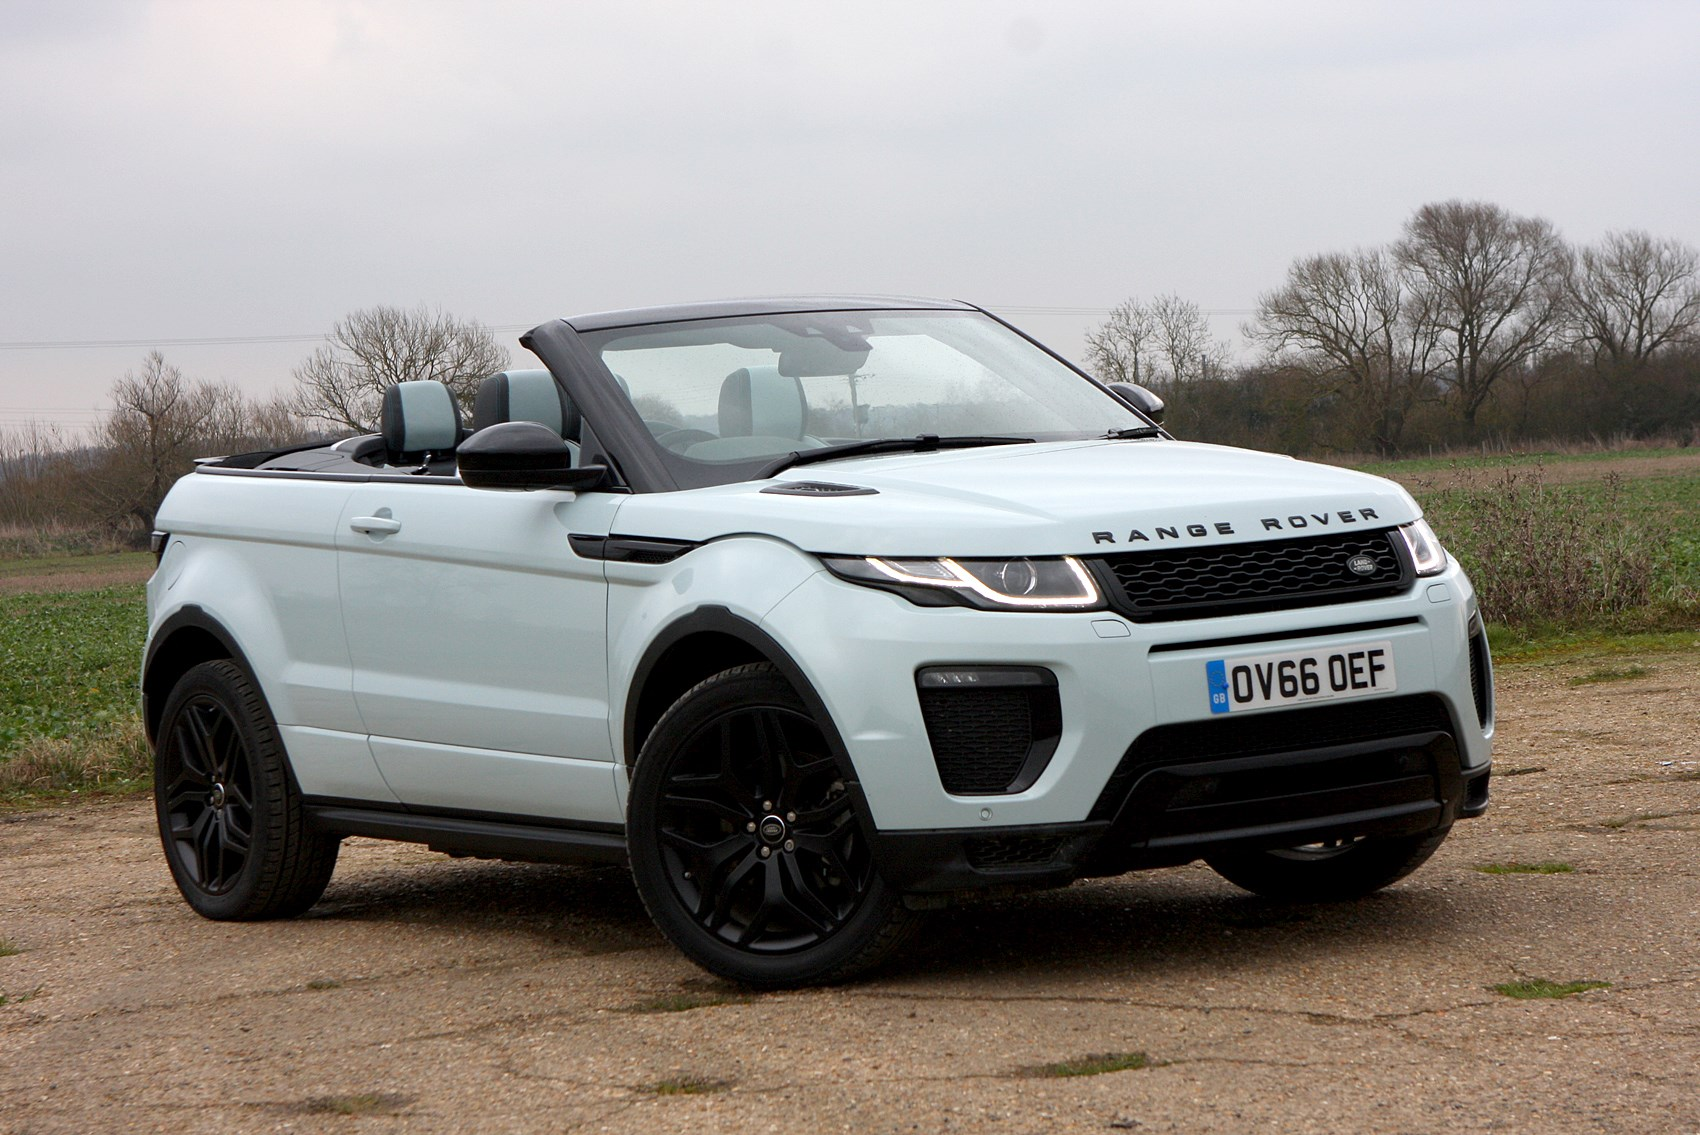 land rover range rover evoque convertible 2016 photos parkers. Black Bedroom Furniture Sets. Home Design Ideas